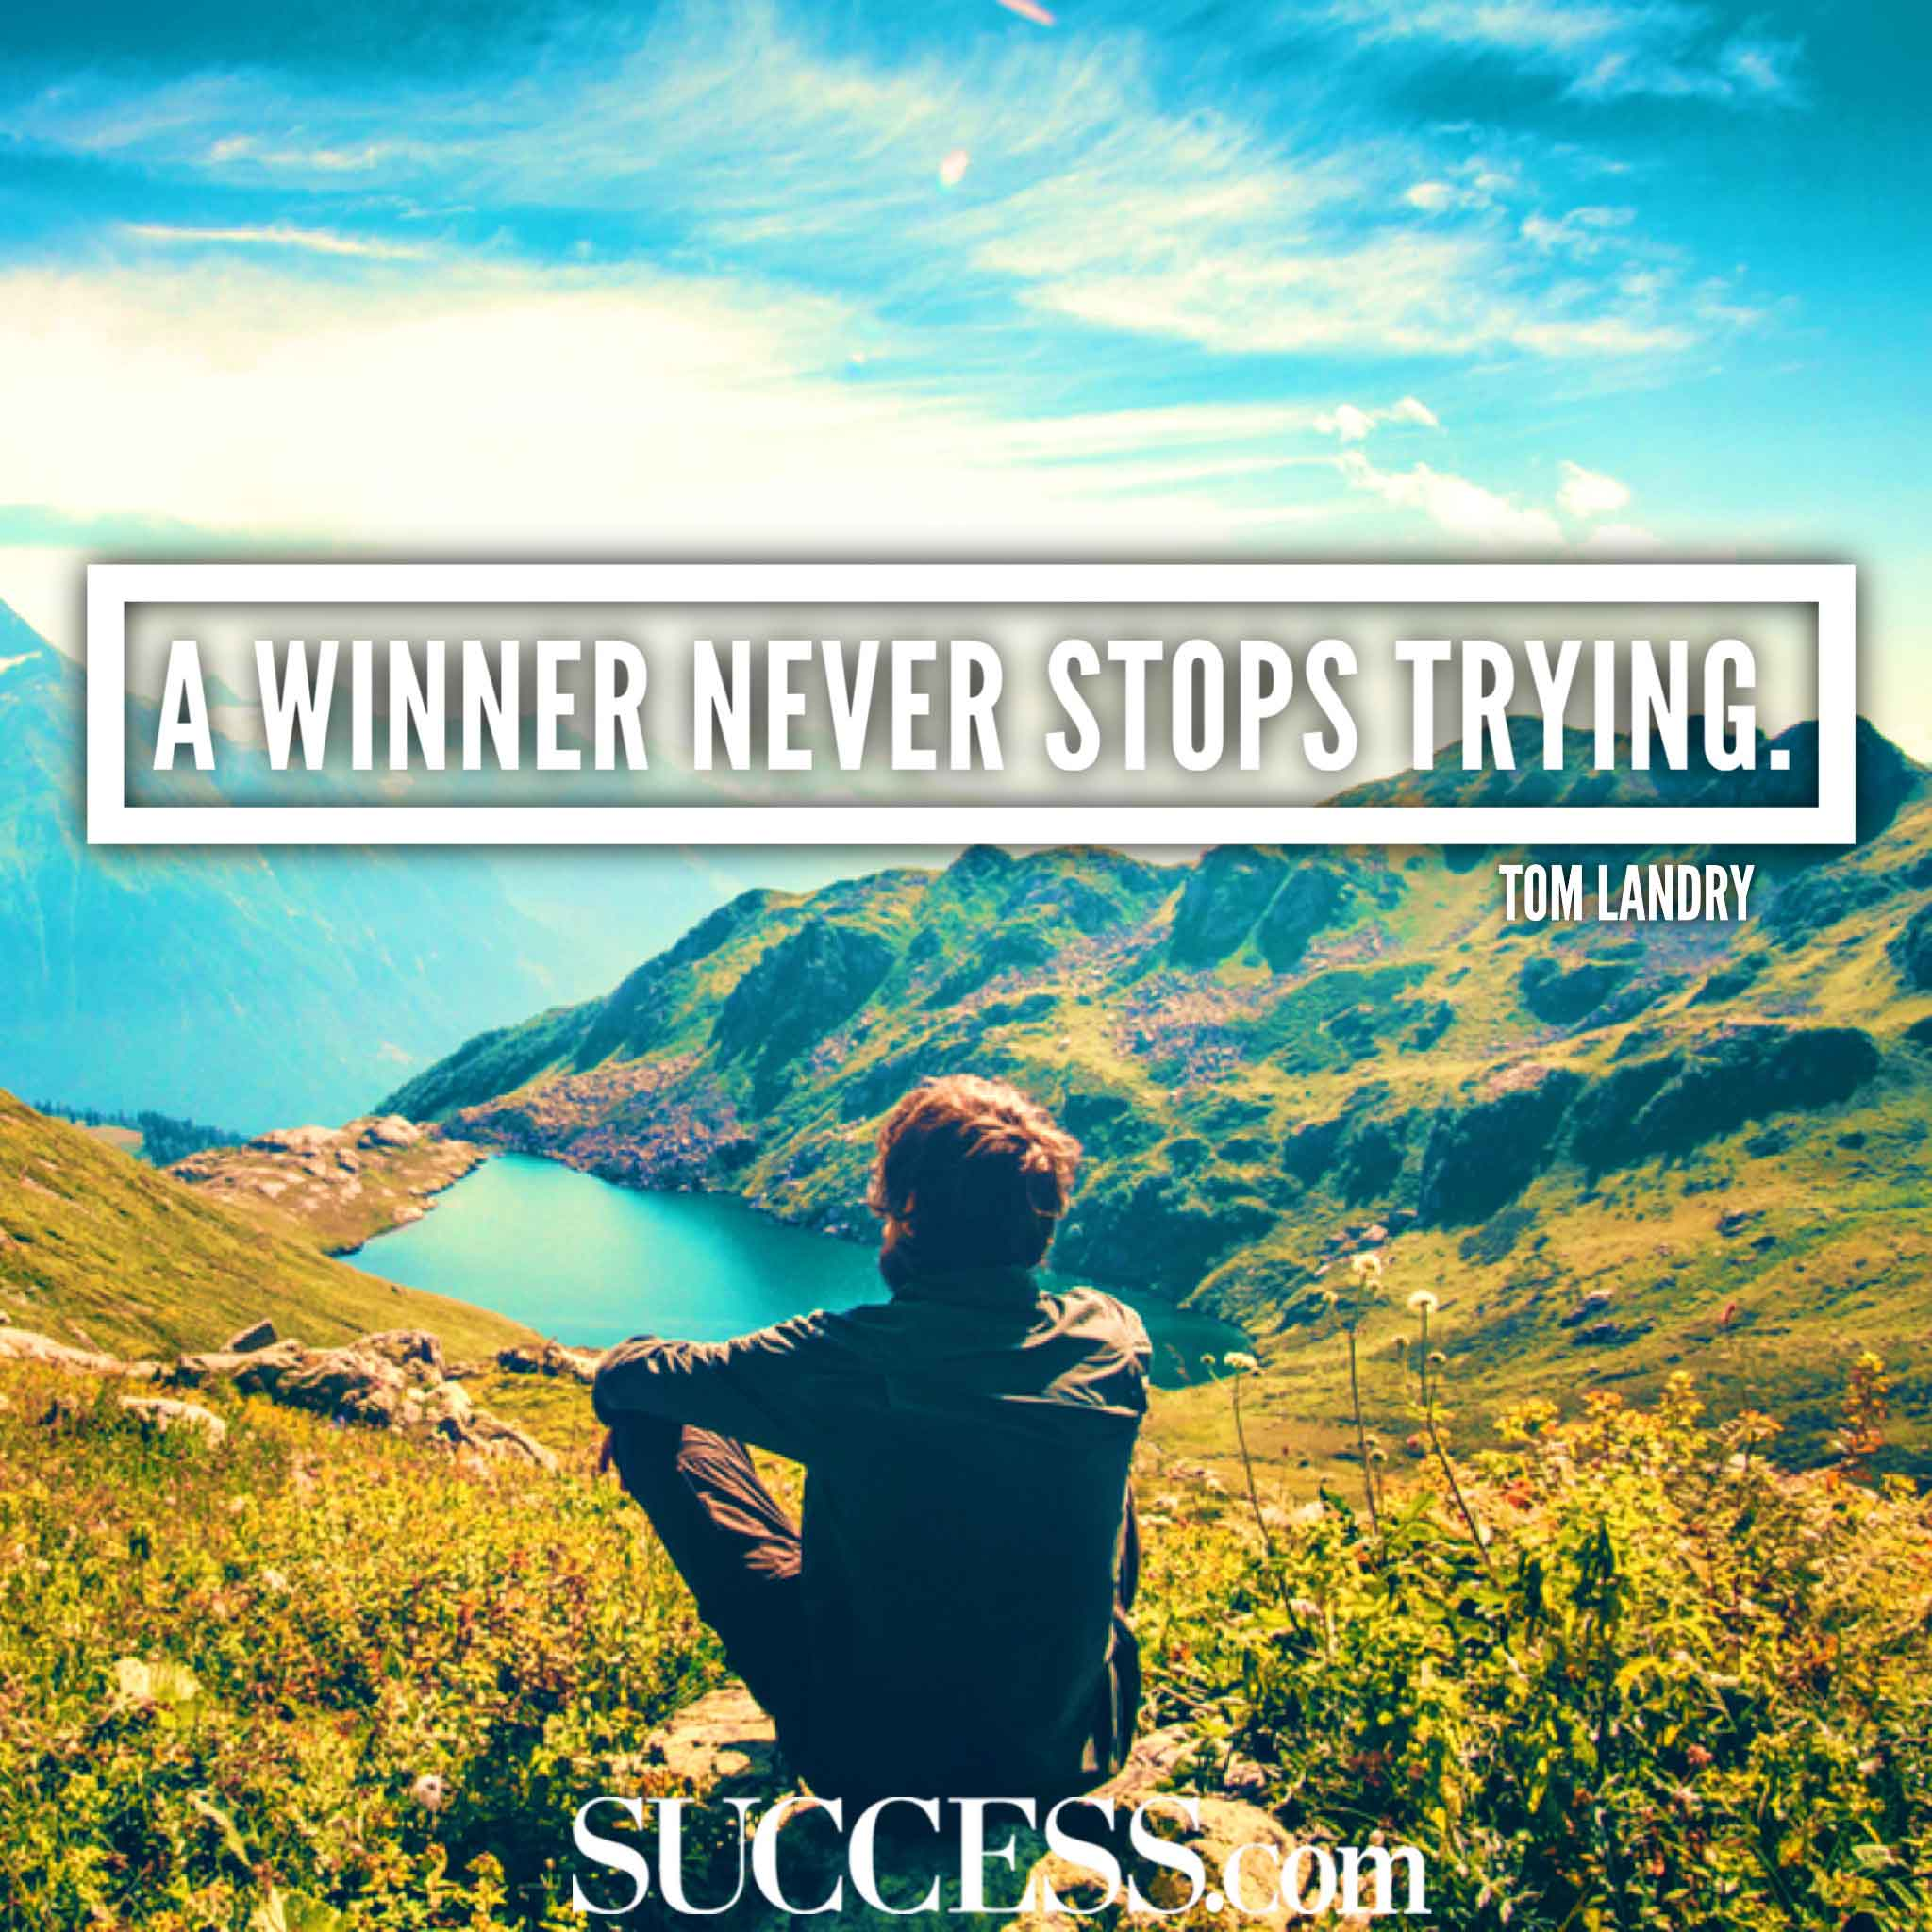 Winner Quotes | 13 Motivational Quotes About Winning